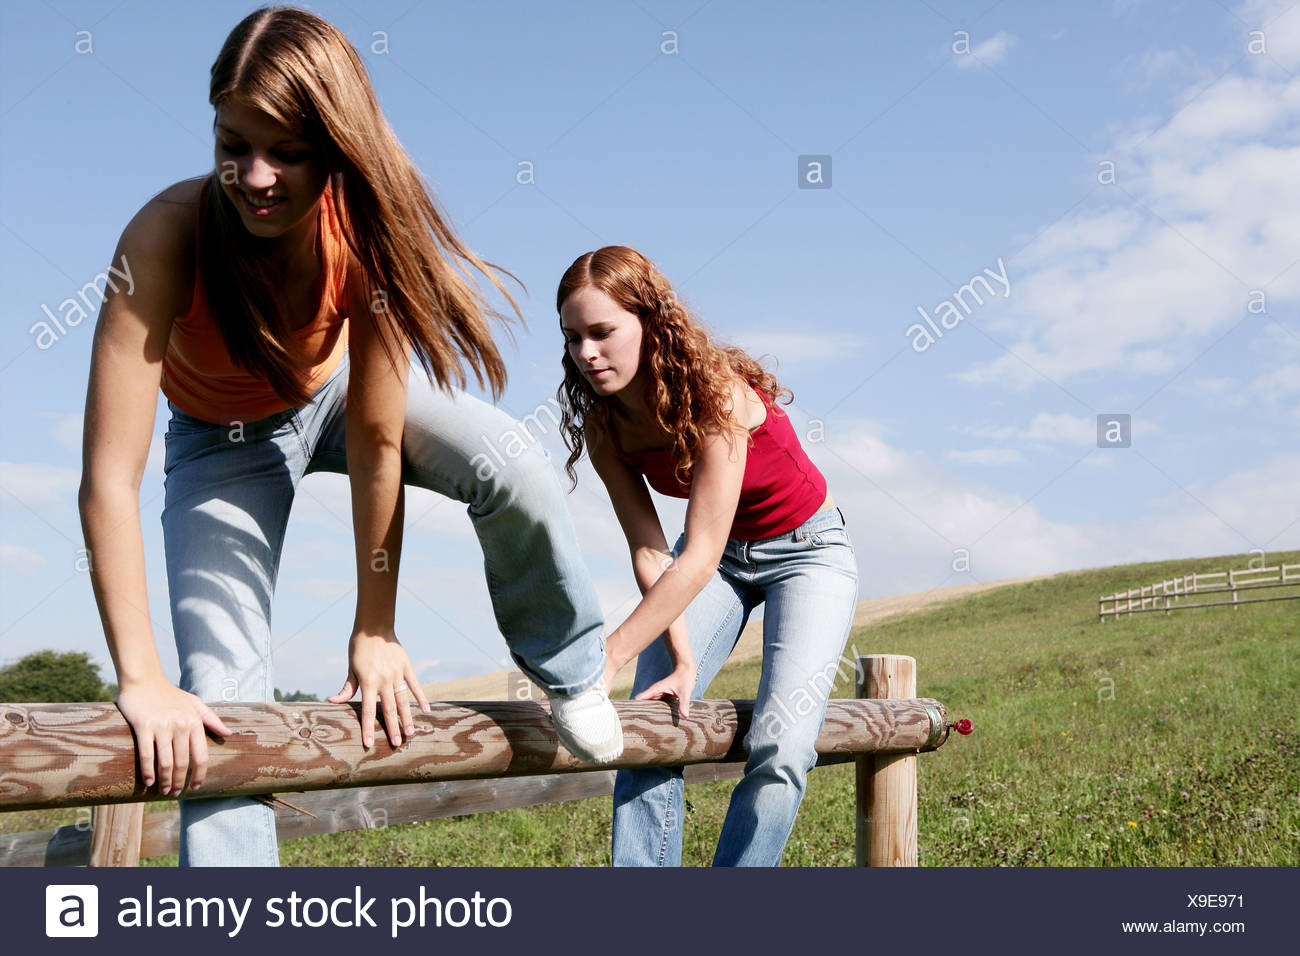 Remarkable, Young teen girls nature join